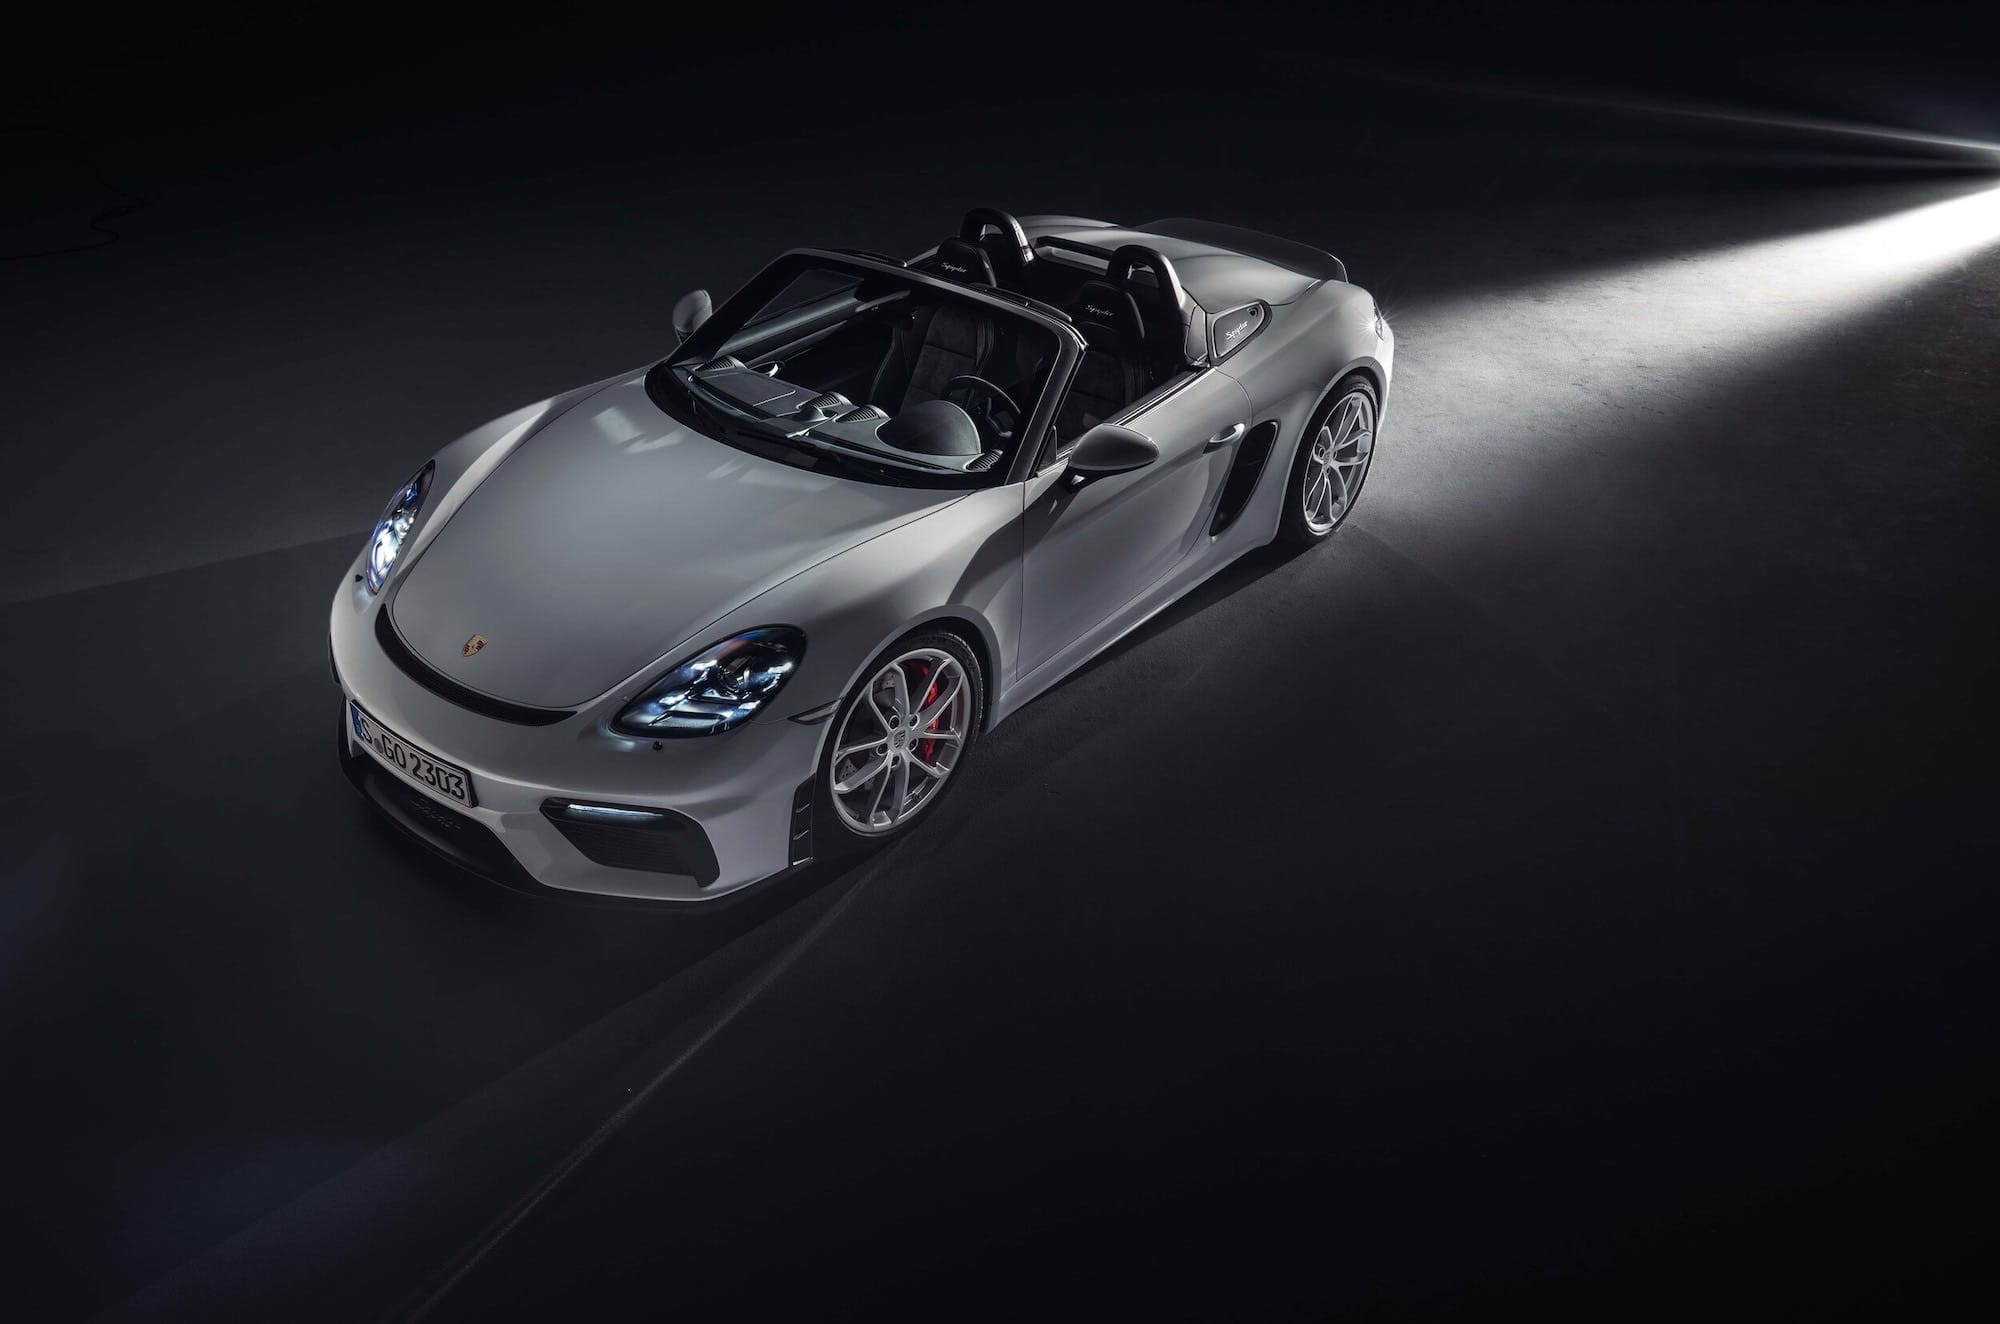 The 2020 Porsche 718 Boxster Spyder And 718 Cayman Gt4 Gallery Wallpapers Infinite Diaries